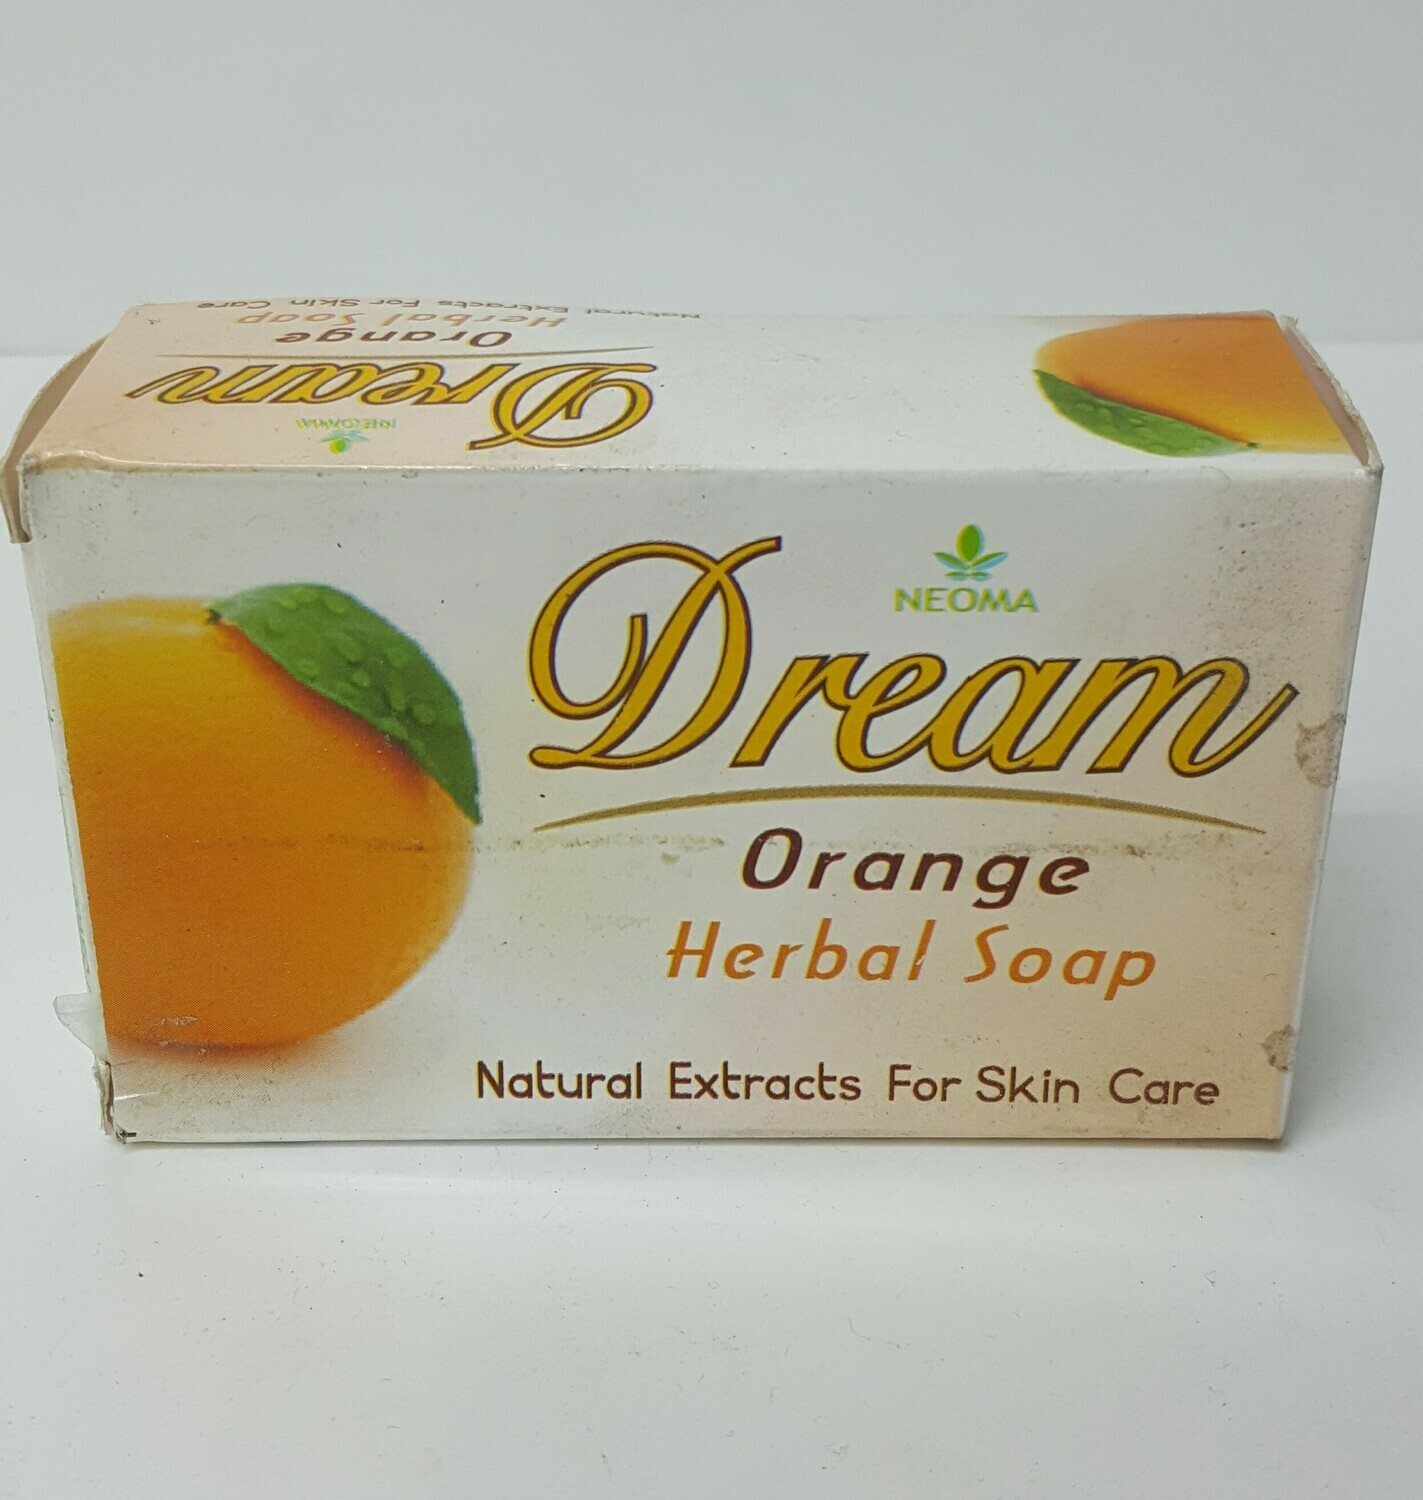 Orange Herbal Soap NEOMA DREAM 125 g